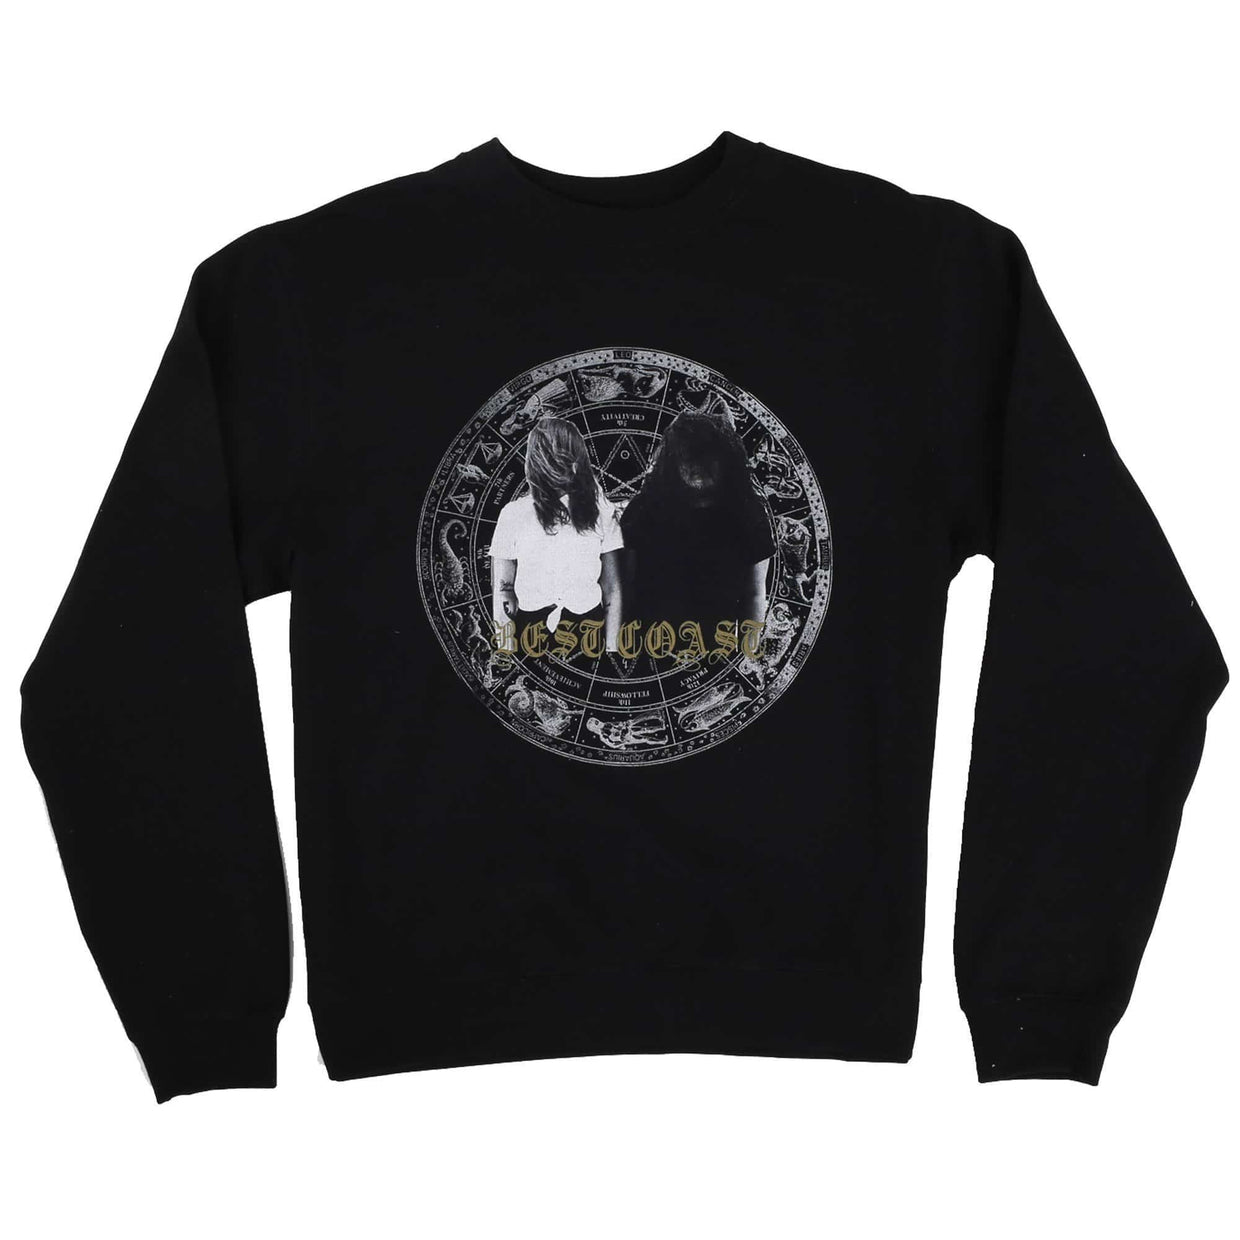 'Astrology' Crewneck Sweater